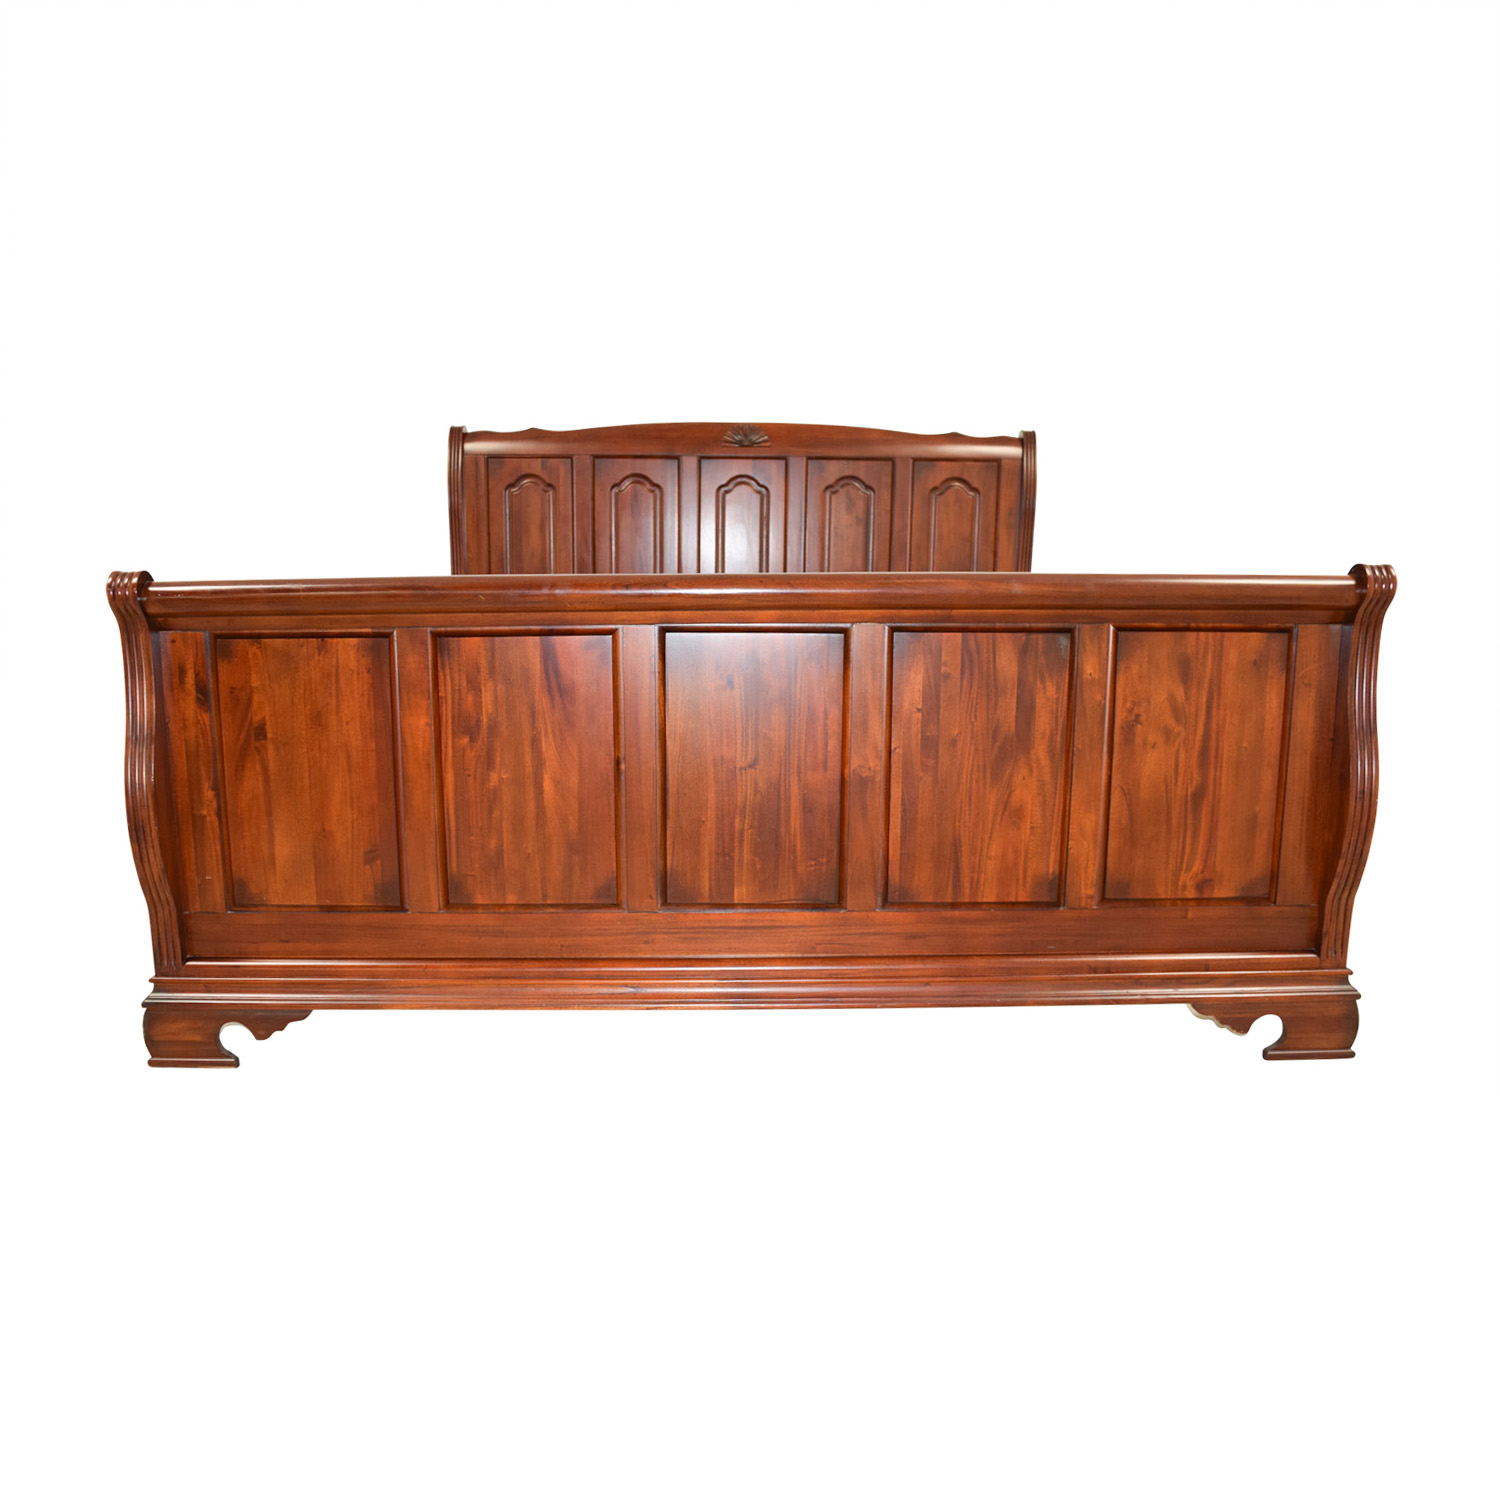 Bobs Furniture Bobs Furniture Mahogany King Sleigh Bed discount